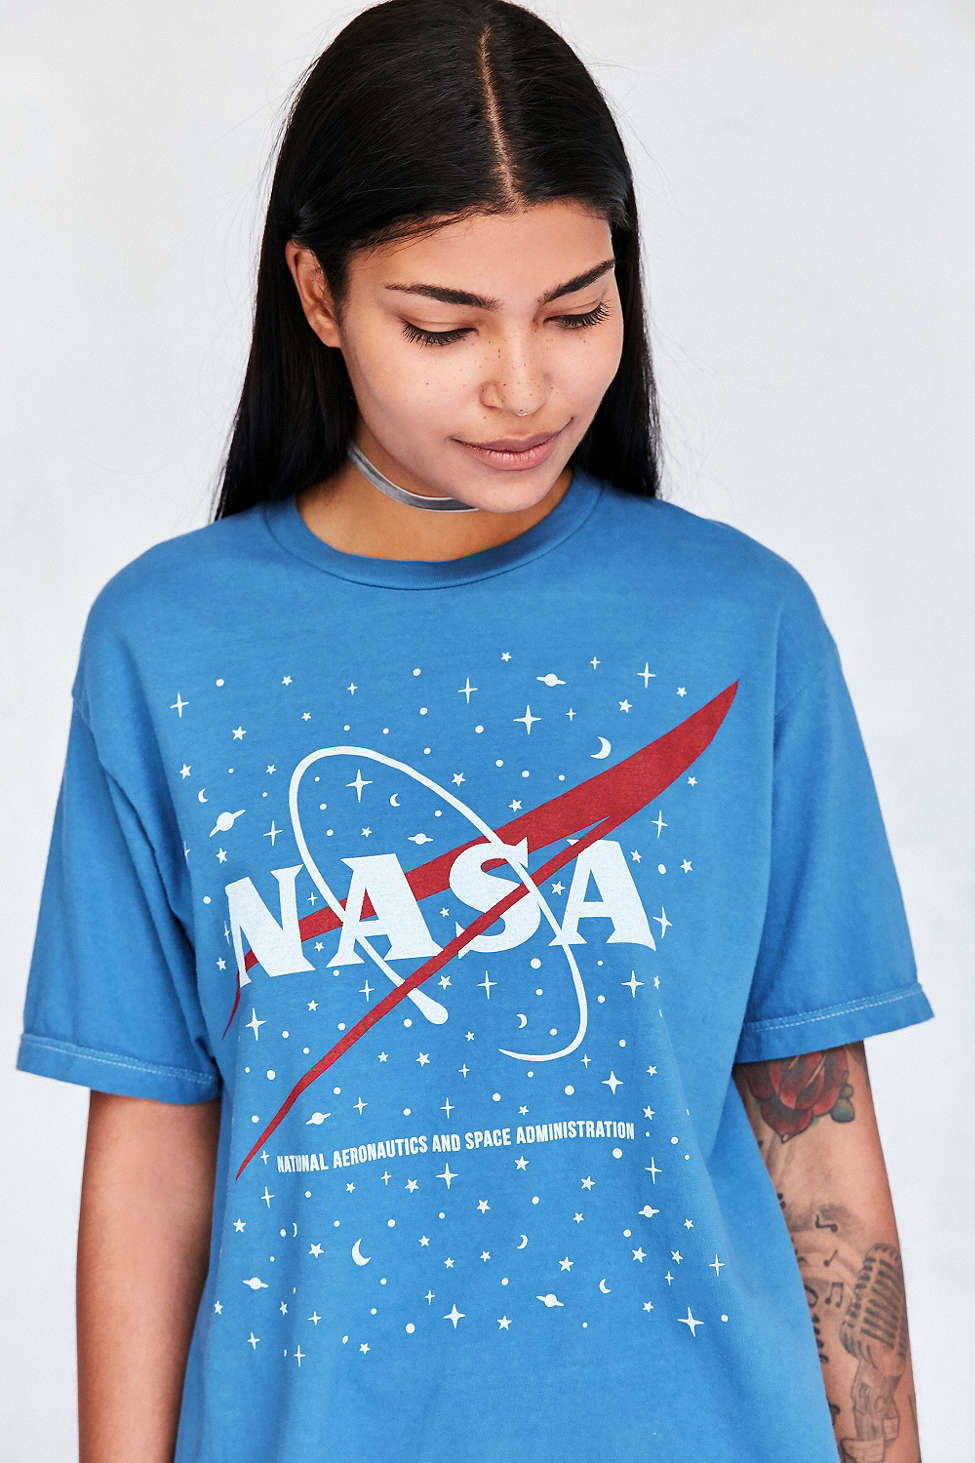 URBAN OUTFITTERS アーバンアウトフィッターズ NASA Tシャツ